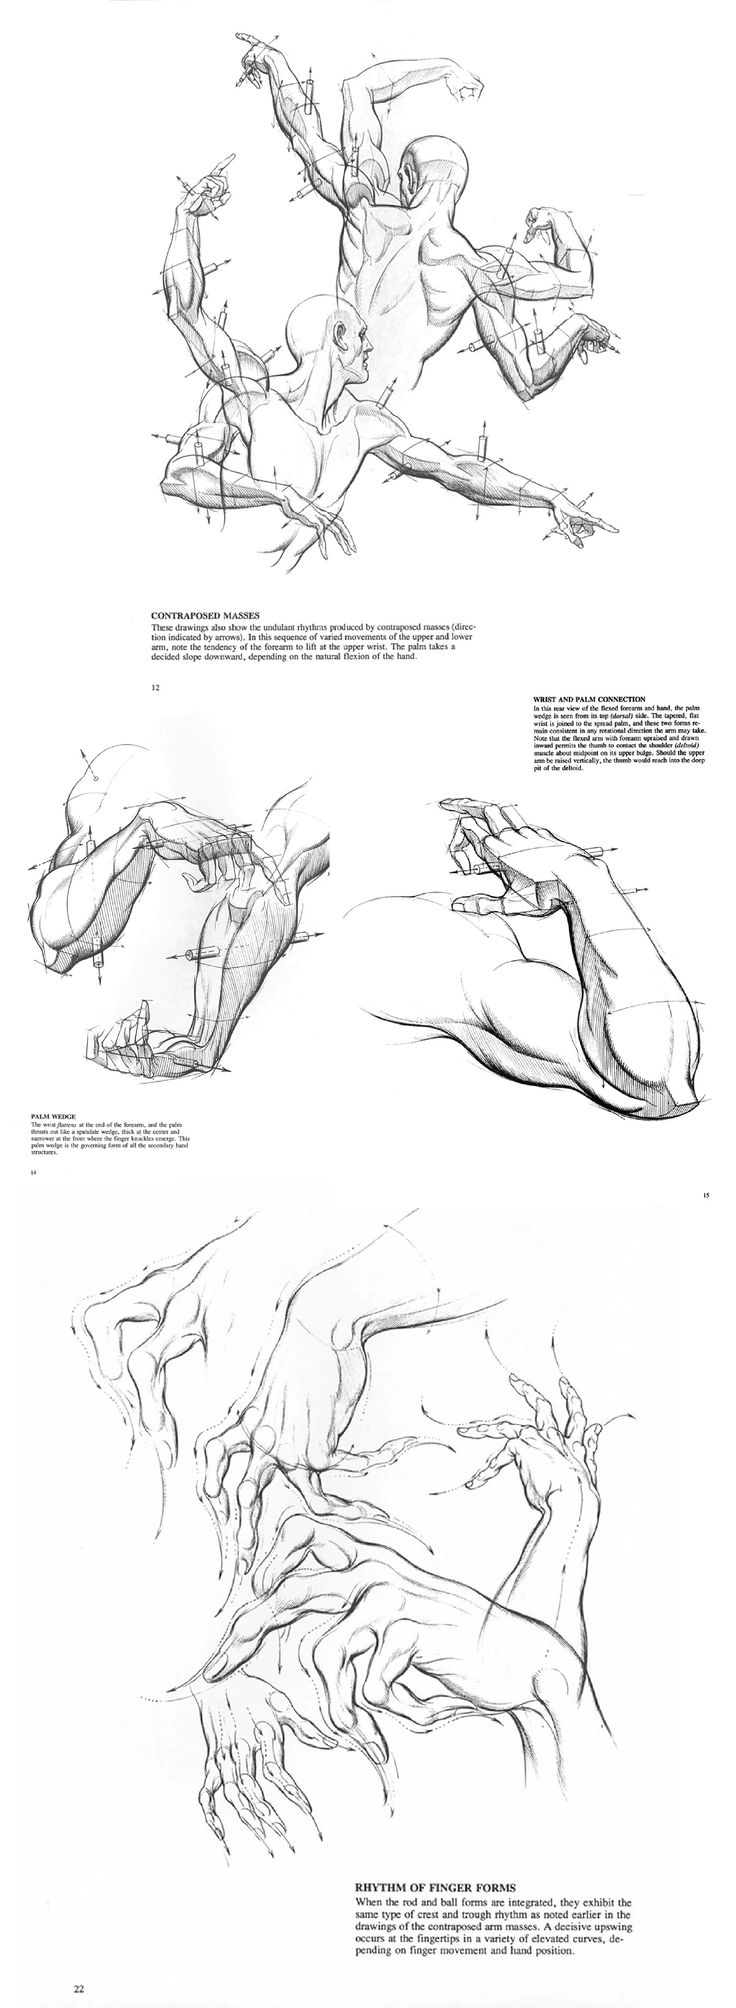 45 best Burne Hogarth images on Pinterest | Human anatomy, Drawing ...